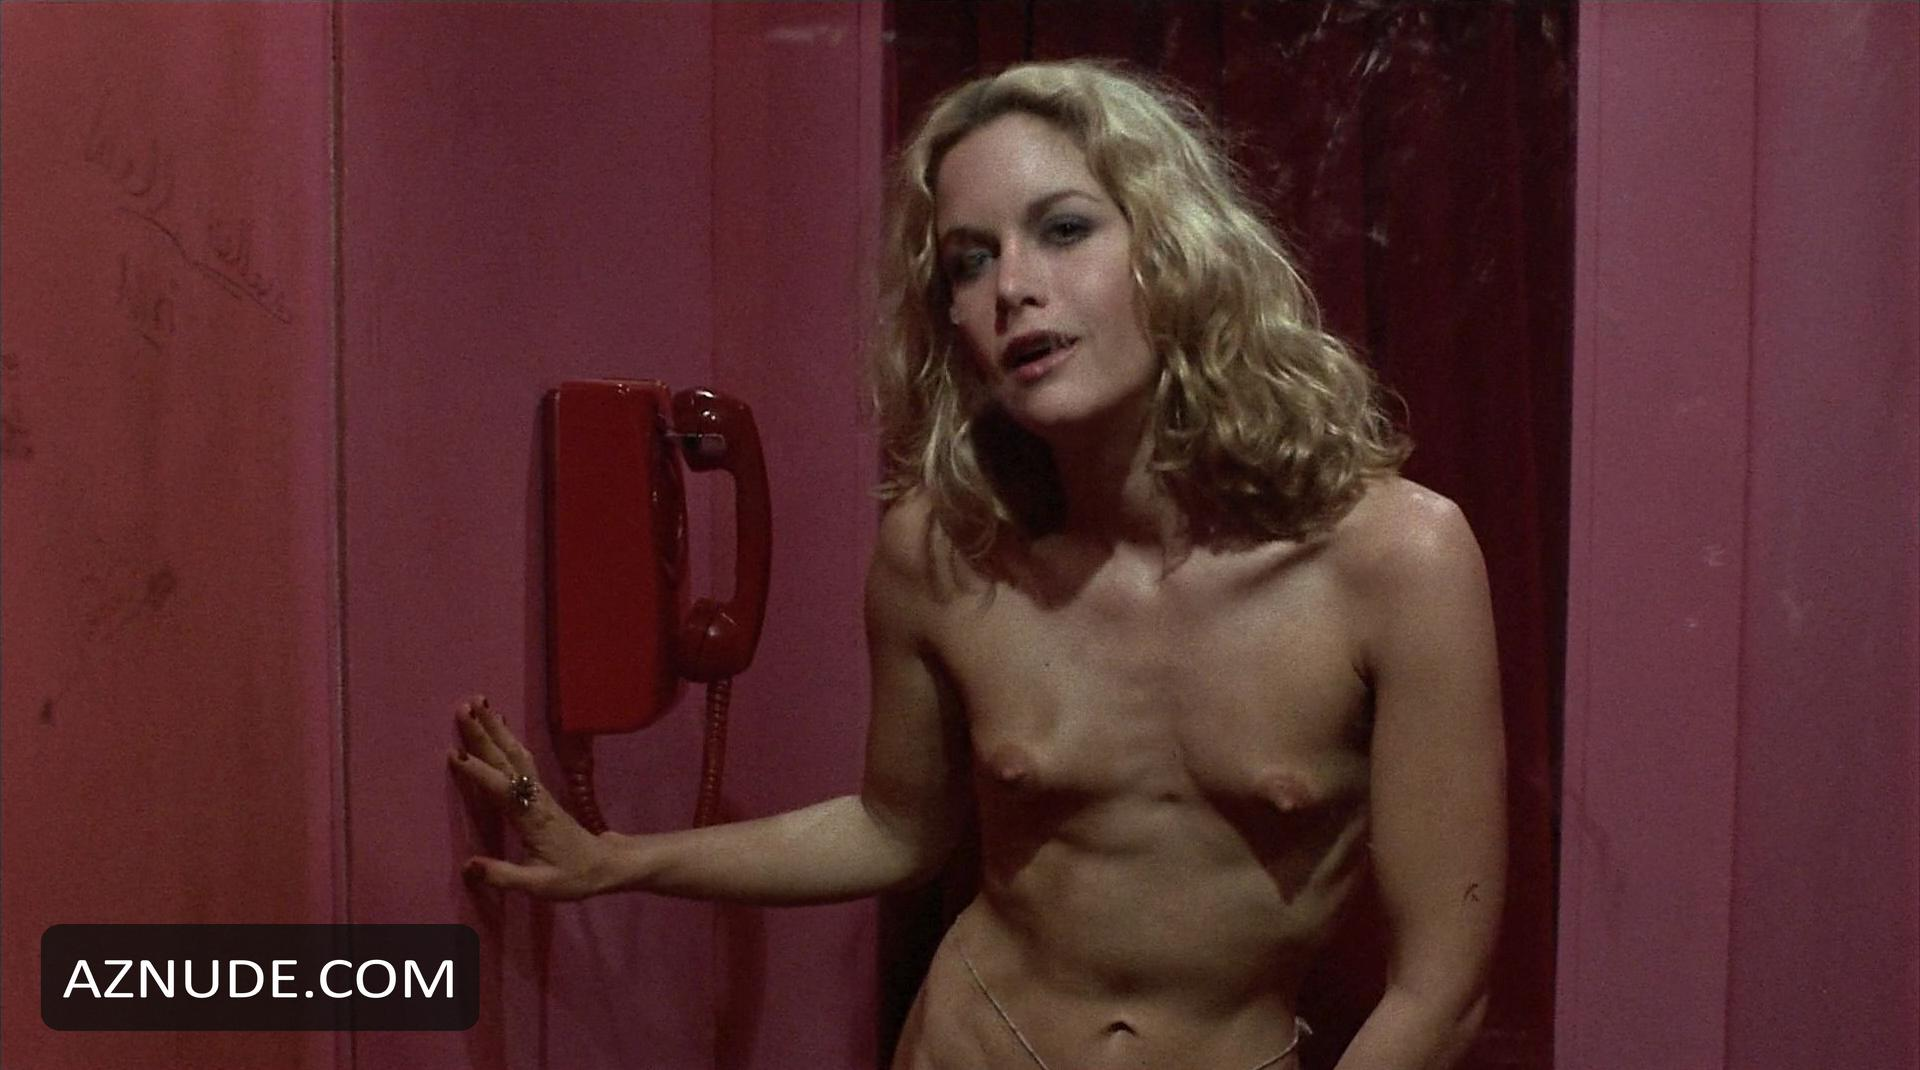 Maggie gyllenhaal sex scene in the deuce scandalplanetcom - 1 part 1